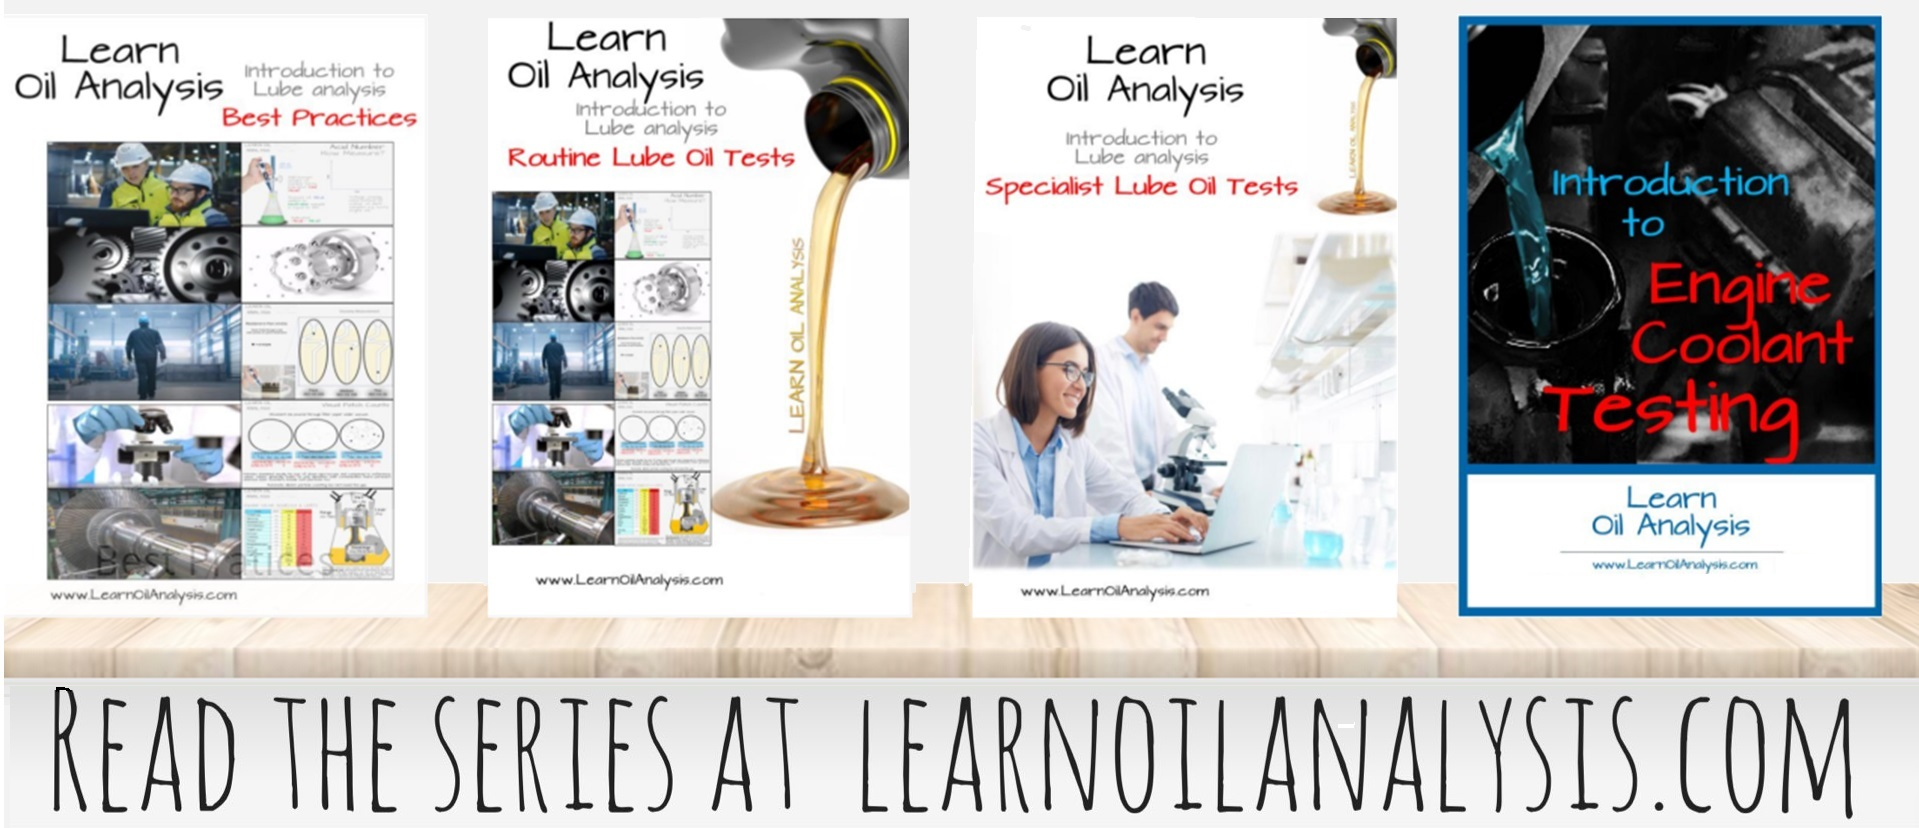 learn oil analysis download book picture Welcome